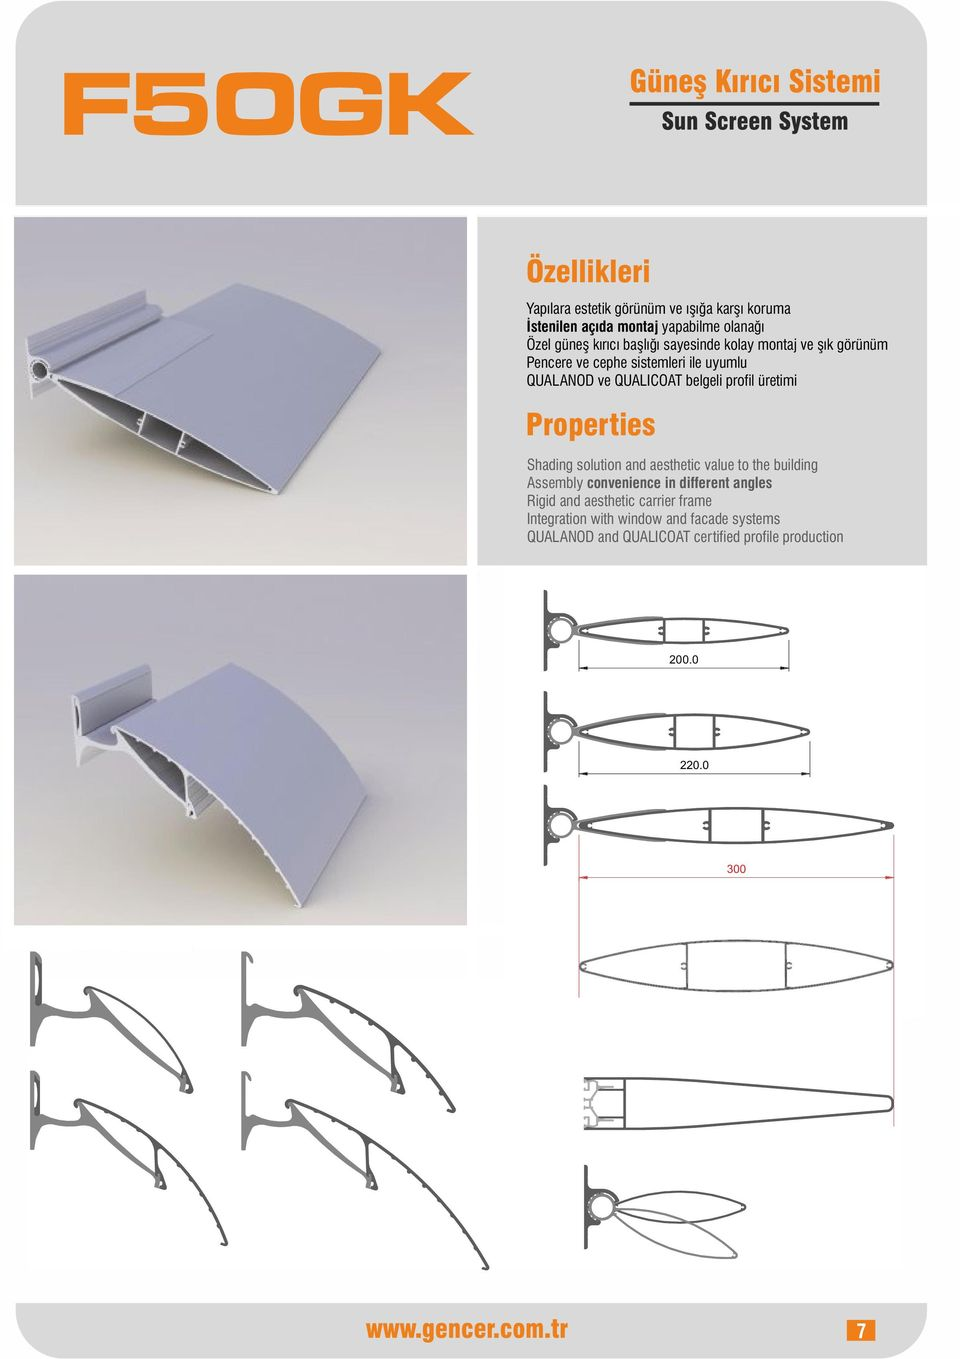 uyumlu Shading solution and aesthetic value to the building Assembly convenience in different